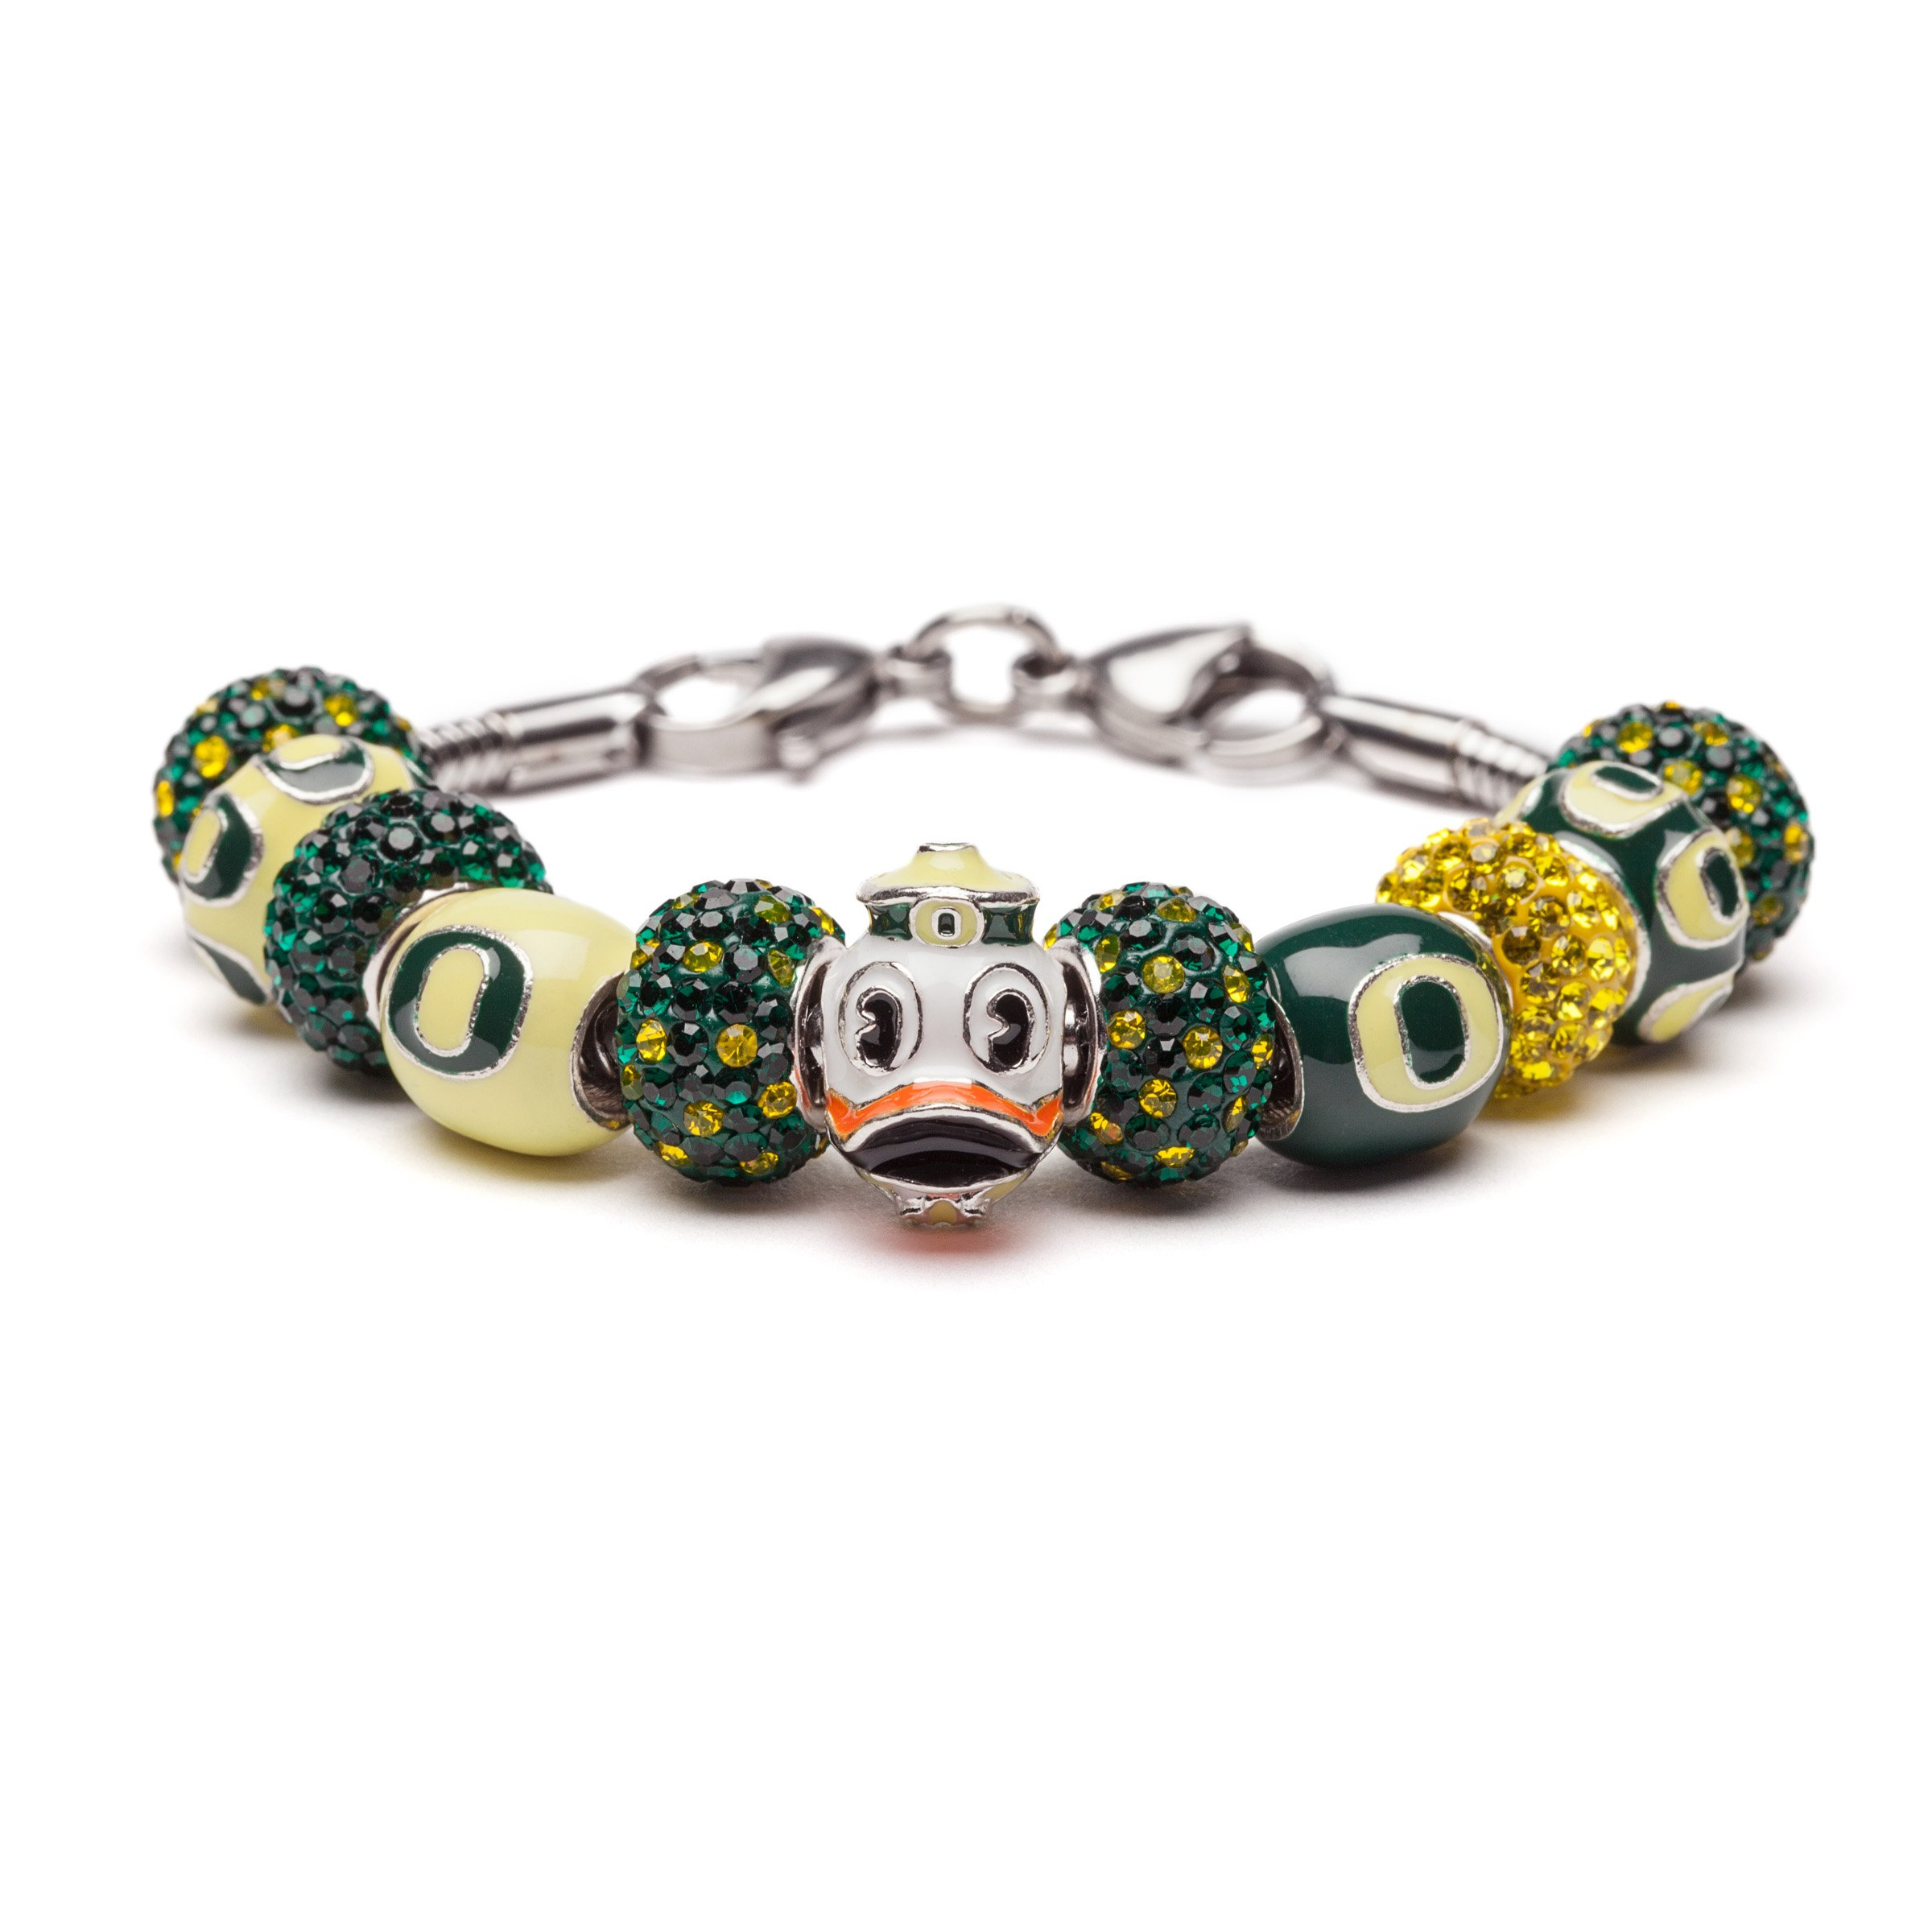 University of Oregon Bracelet | UO Ducks - Bracelet with 5 UO Beads and 6 Crystal Charms | Officially Licensed University of Oregon Jewelry | UO Charms | University of Oregon Gifts | Stainless Steel